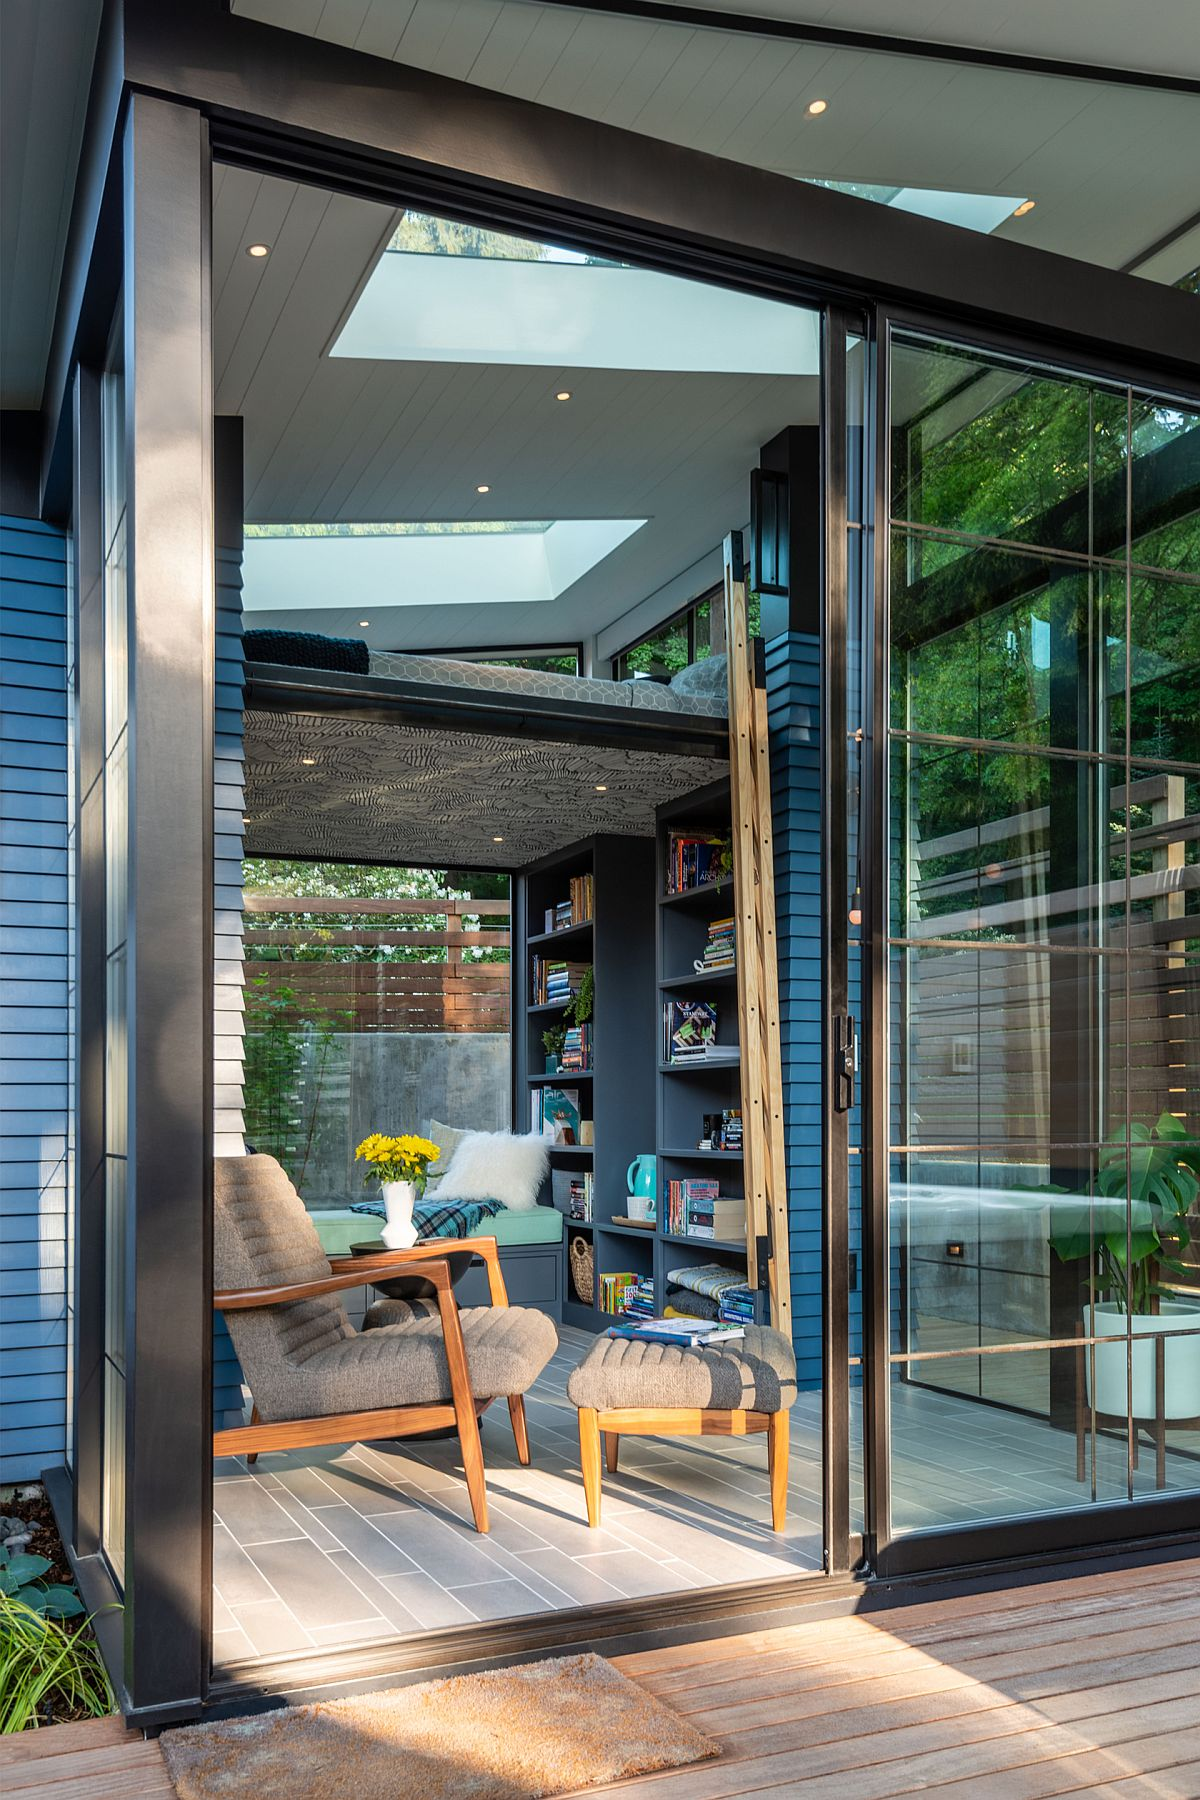 Glazed sliding glass doors connect the shed with the deck outside